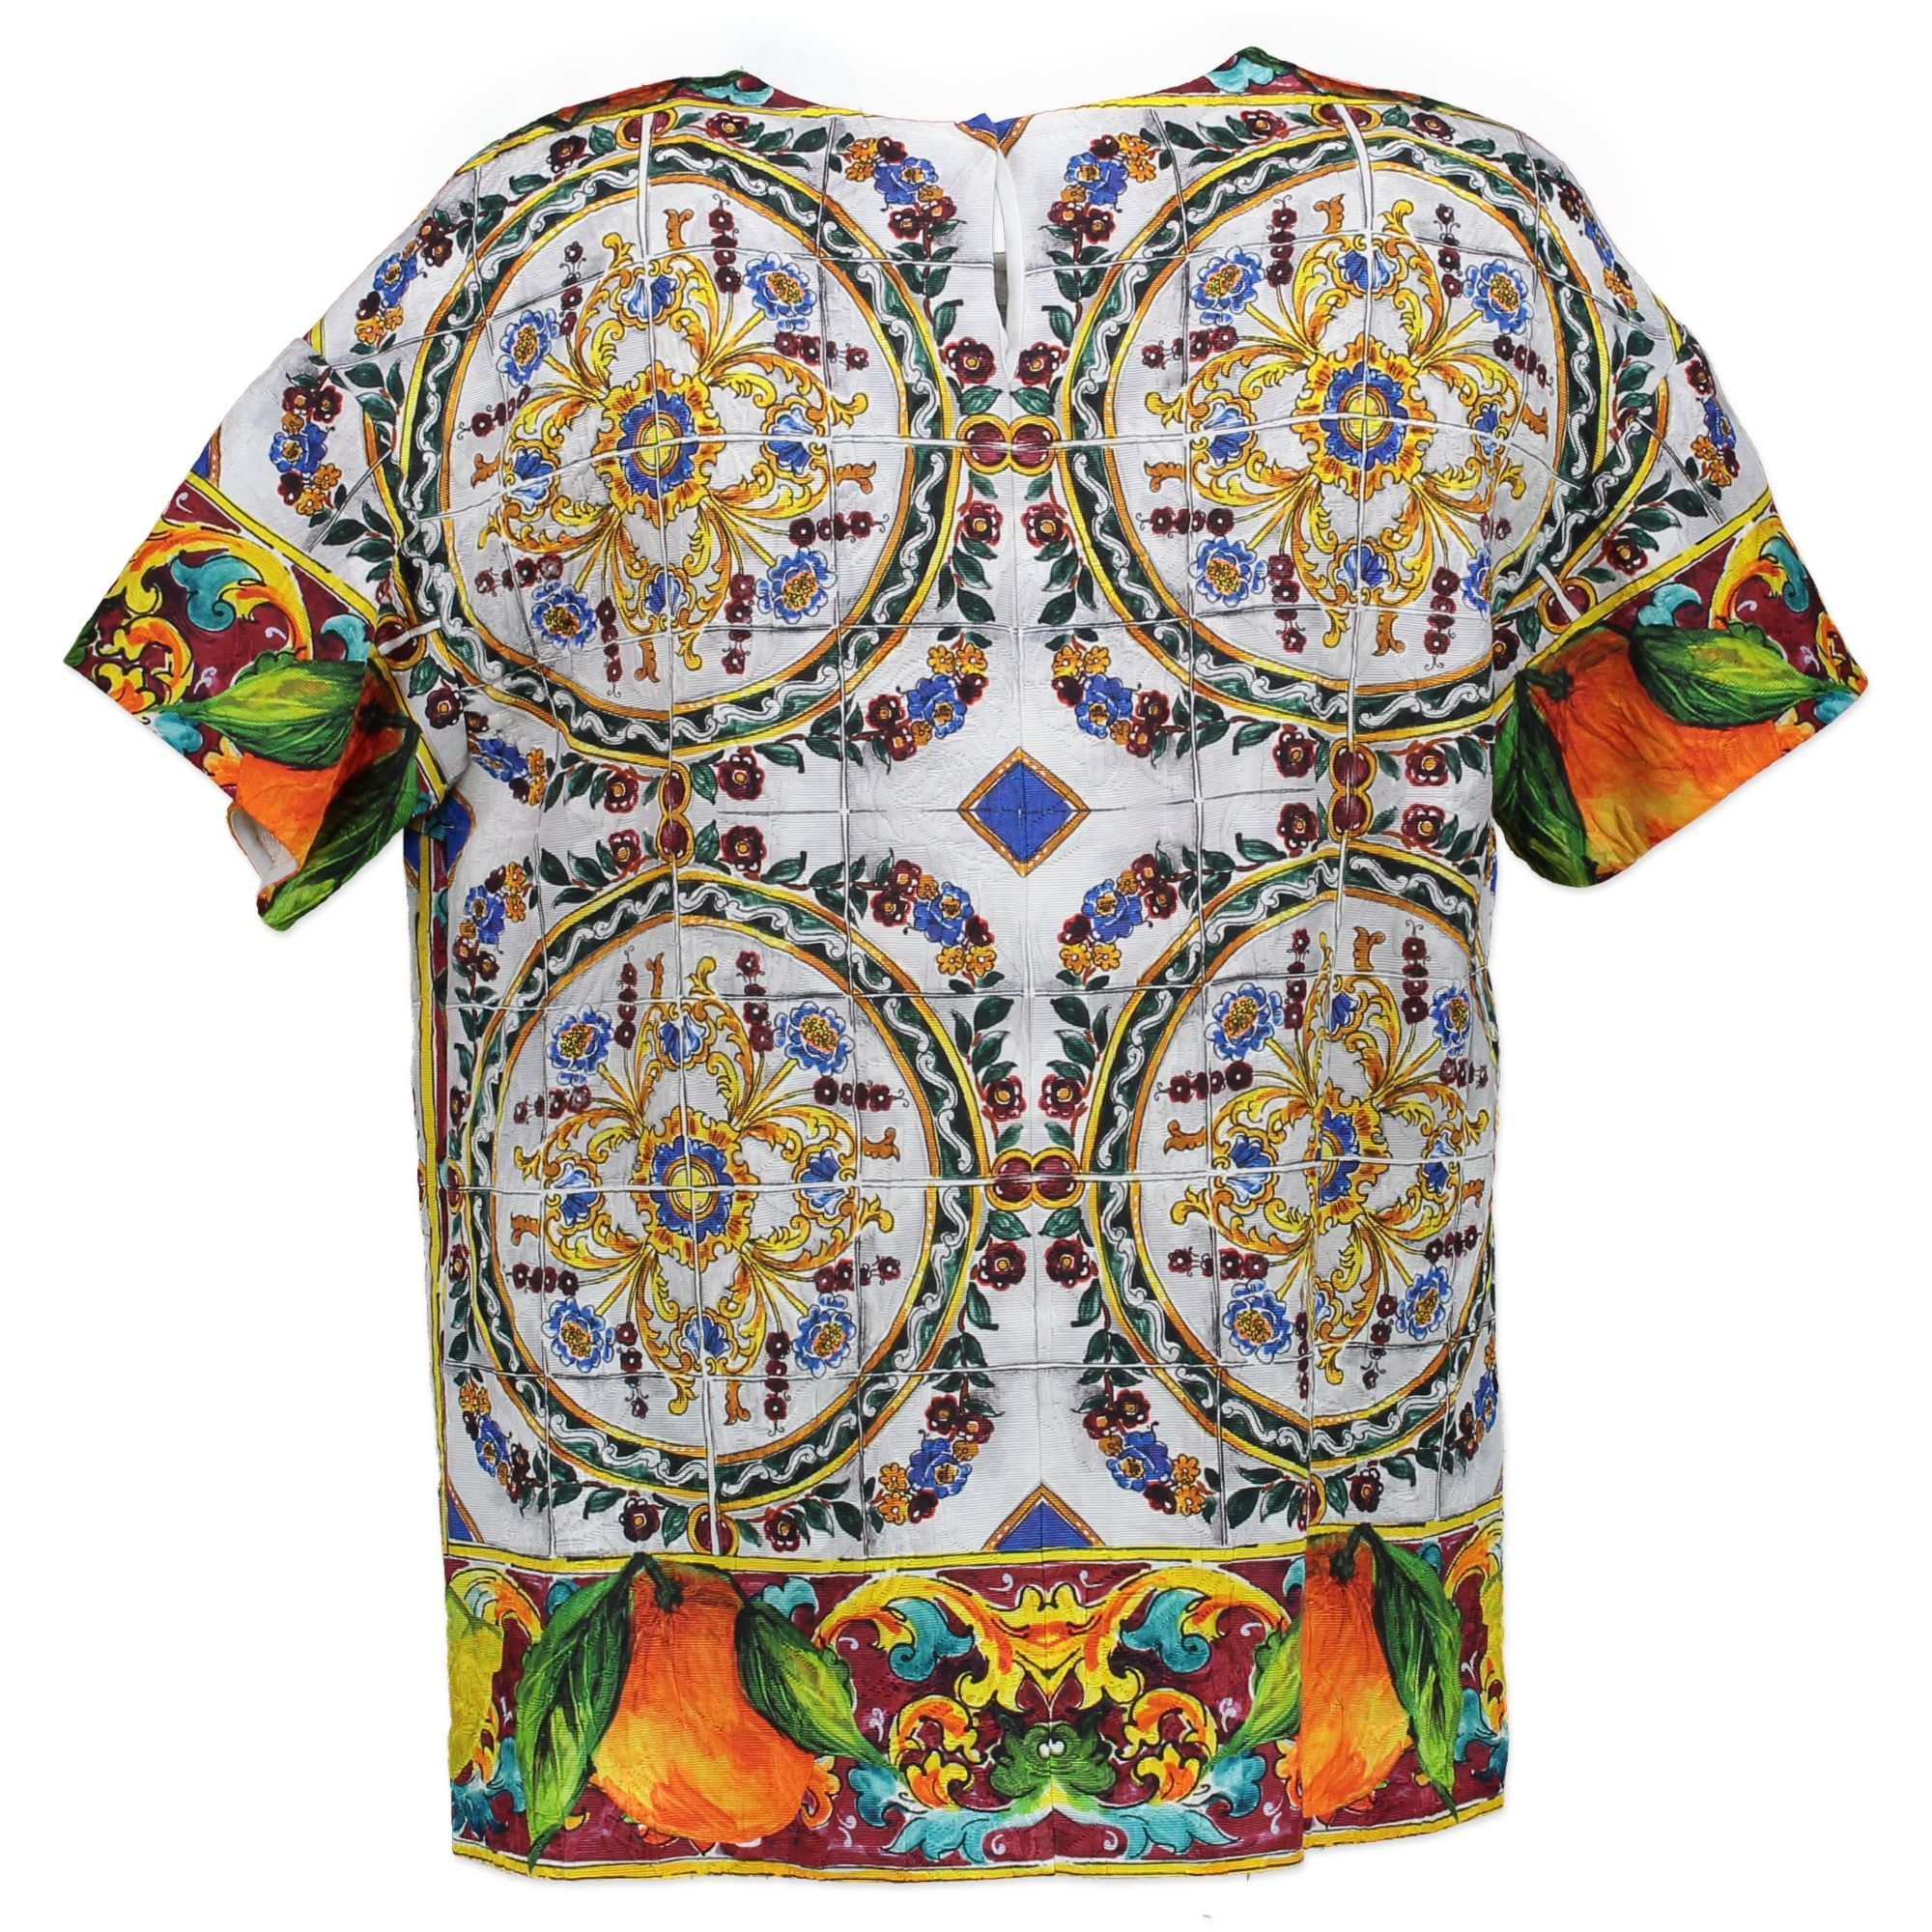 6d0bbec8f7c Buy authentic secondhand Dolce   Gabbana top at the right price at Labellov  vintage webshop.